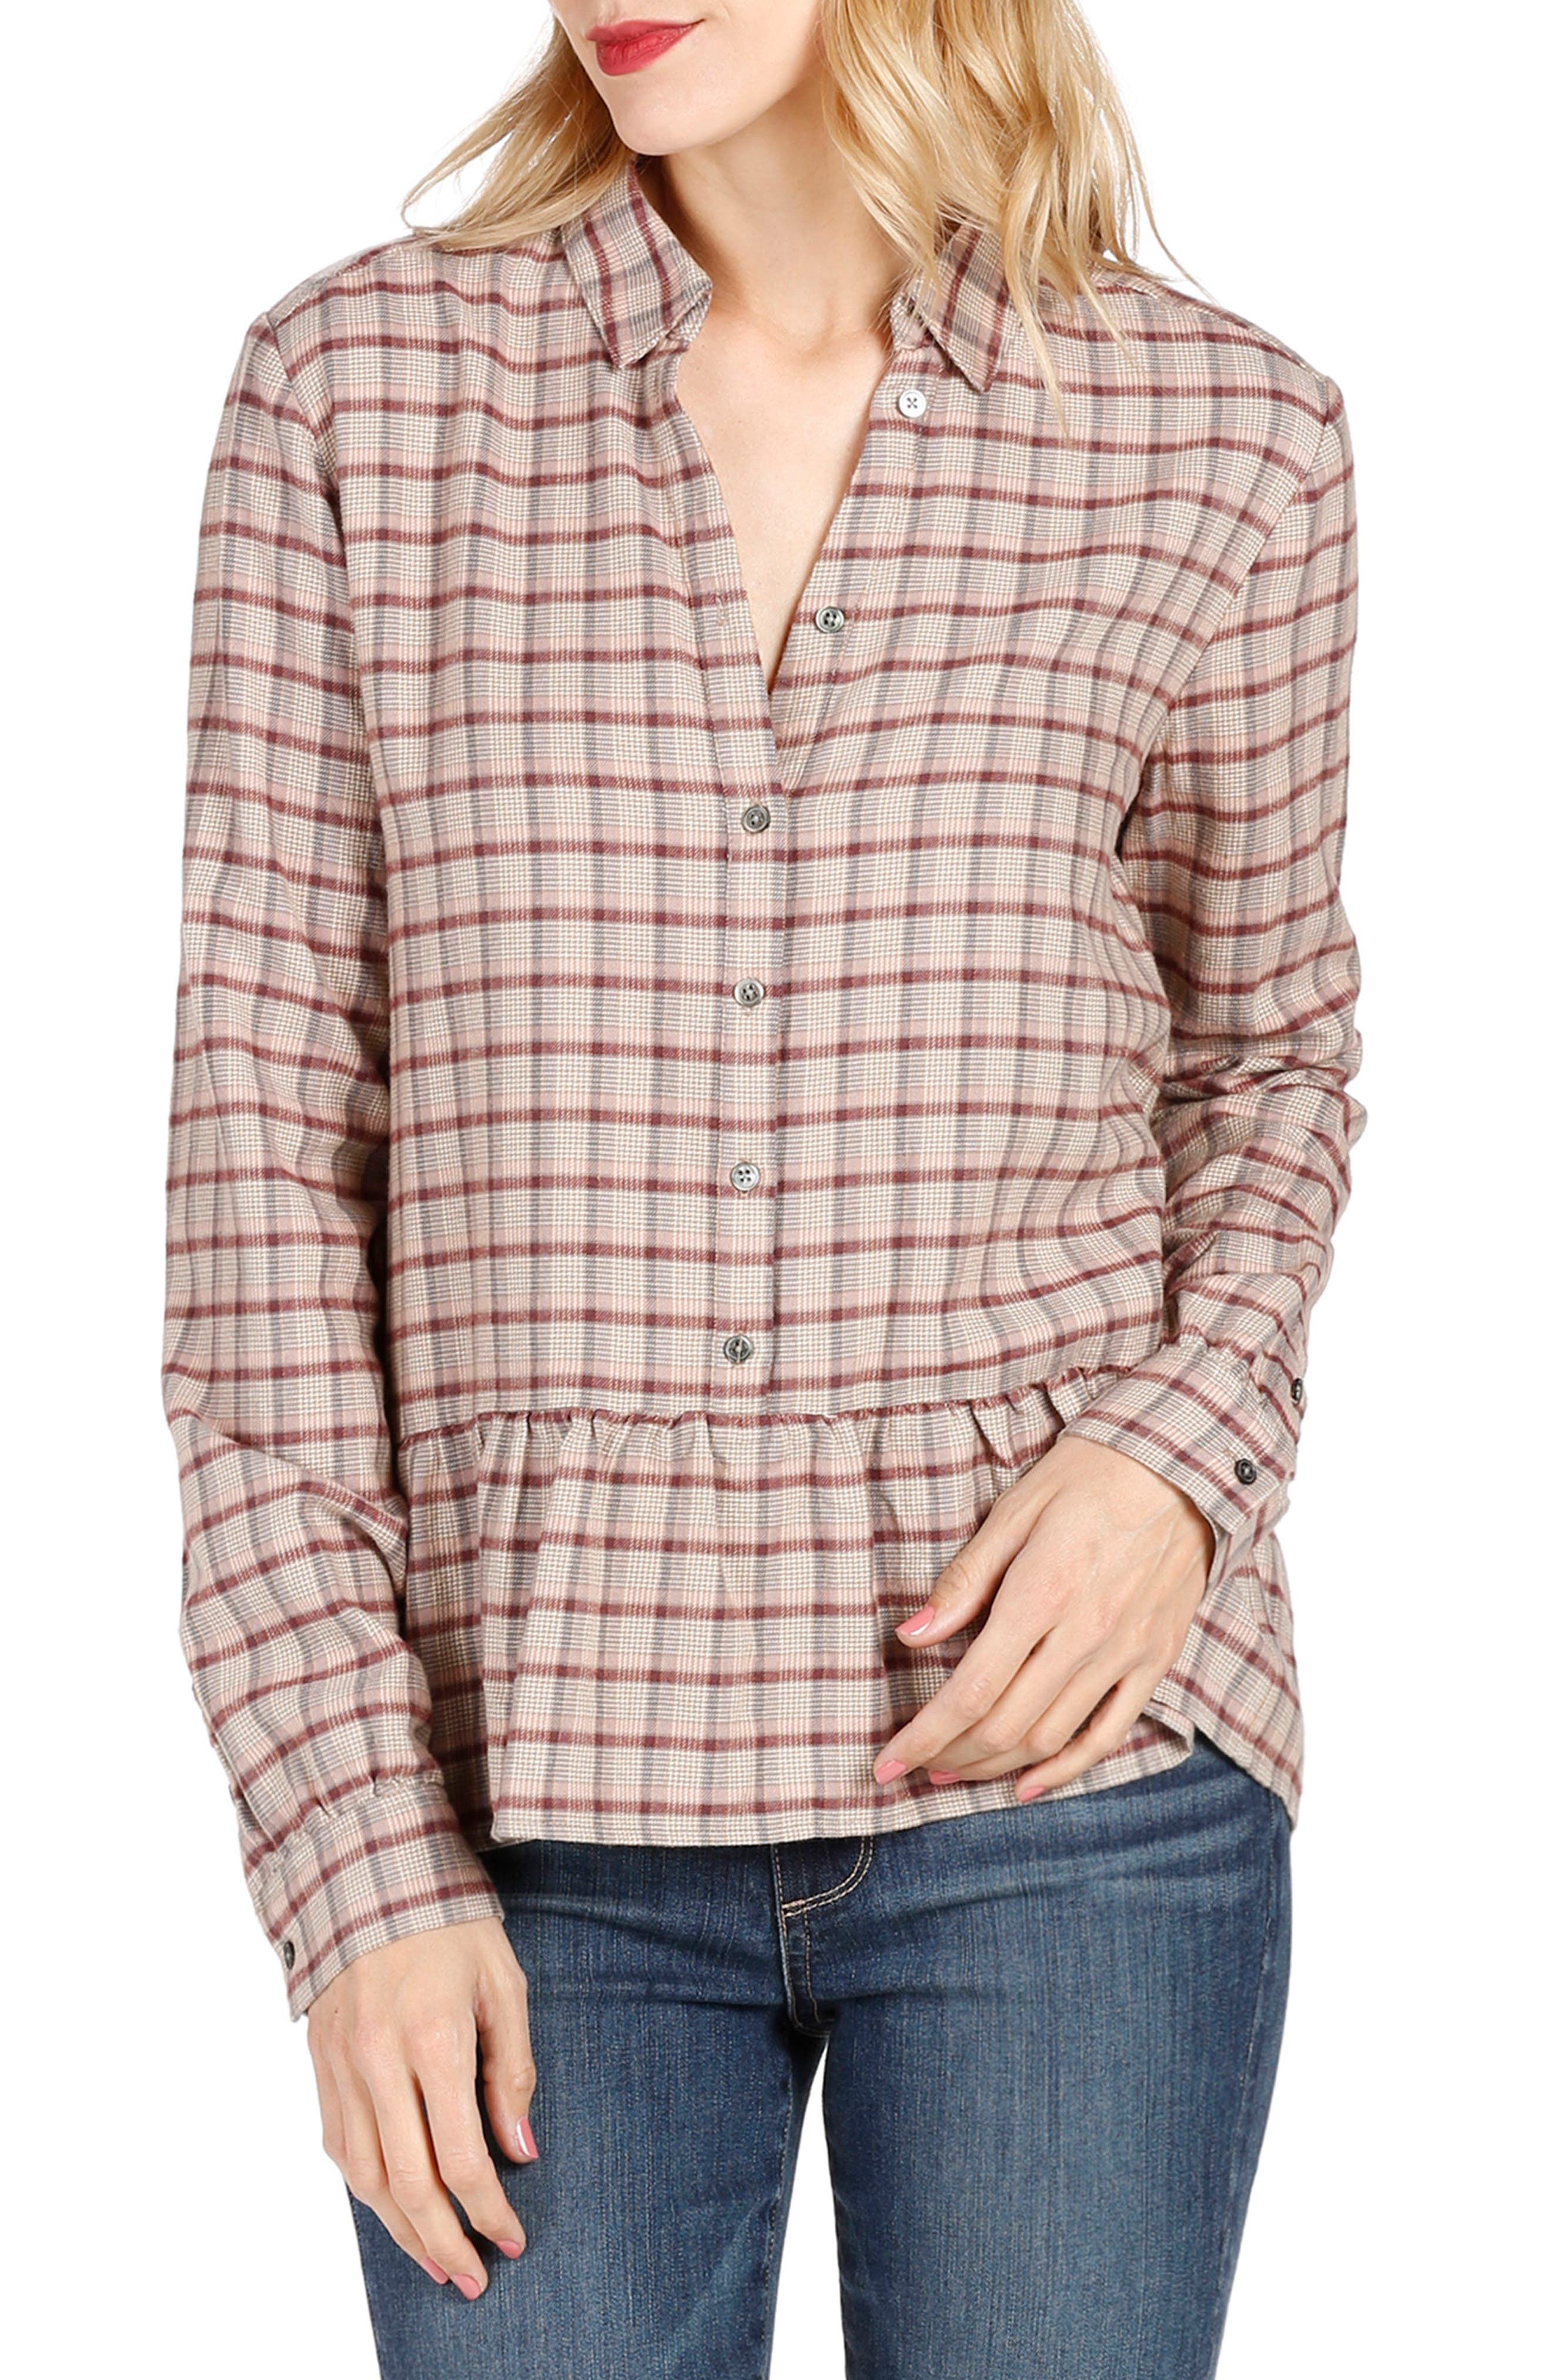 PAIGE Merrigan Plaid Peplum Top